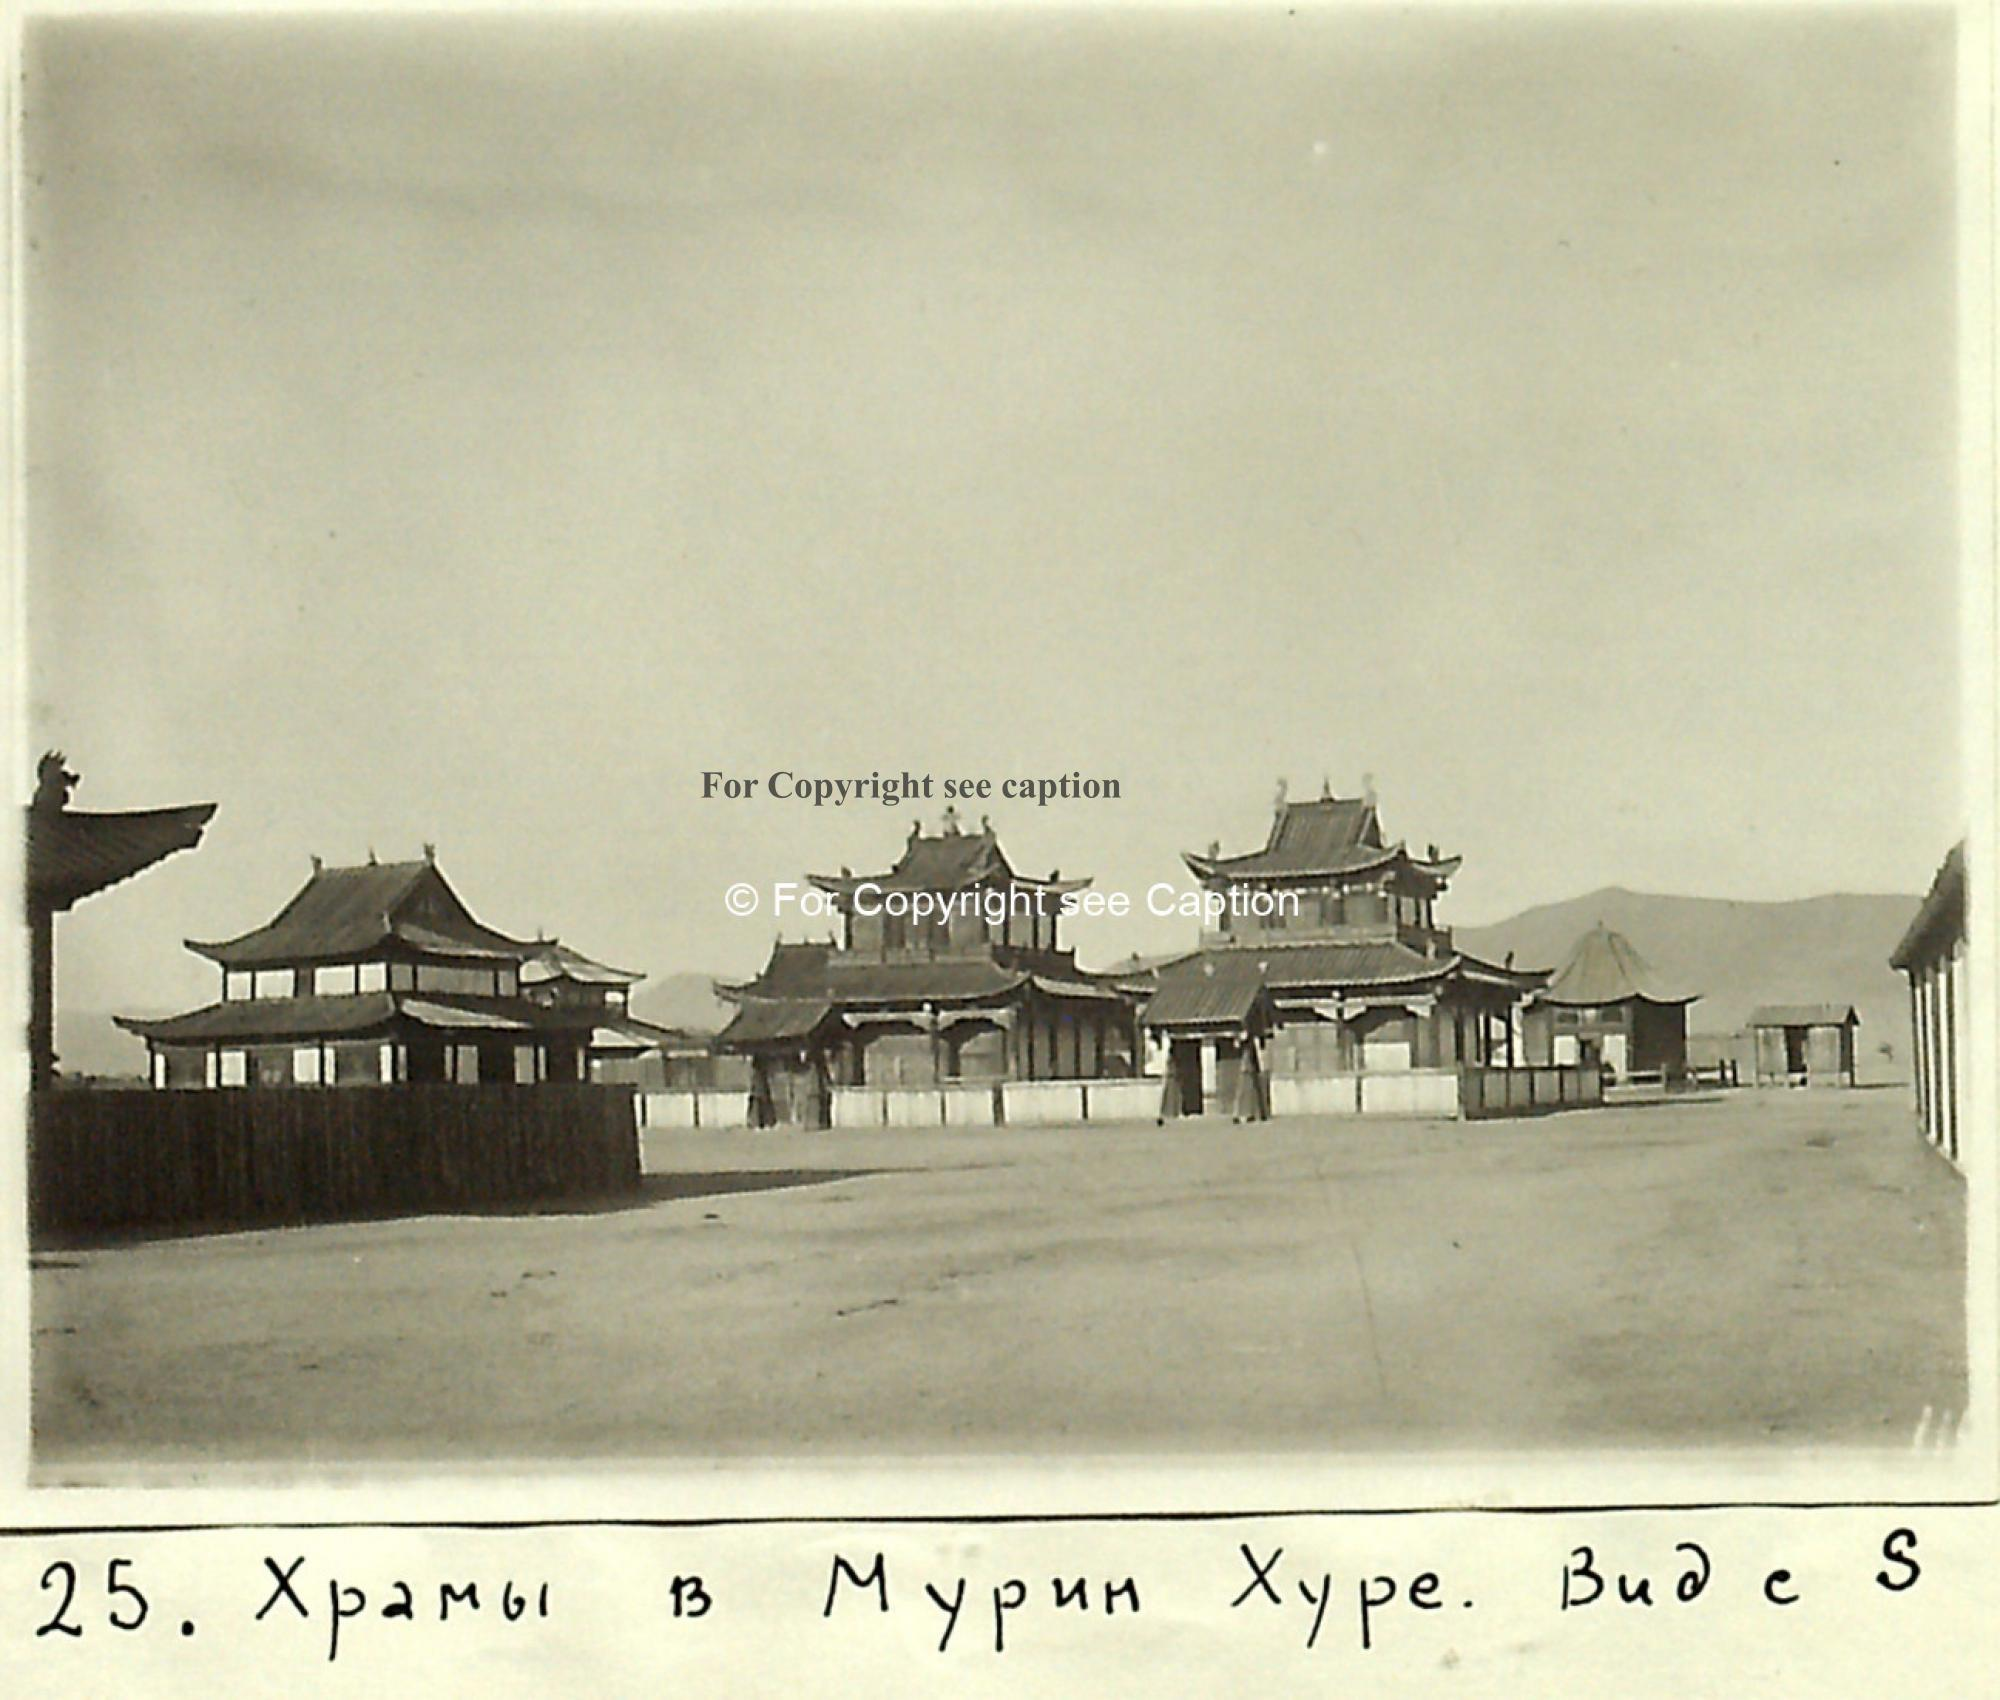 Main temples. Film Archives K-23652,  photo taken by Kondratyev in the 1920s